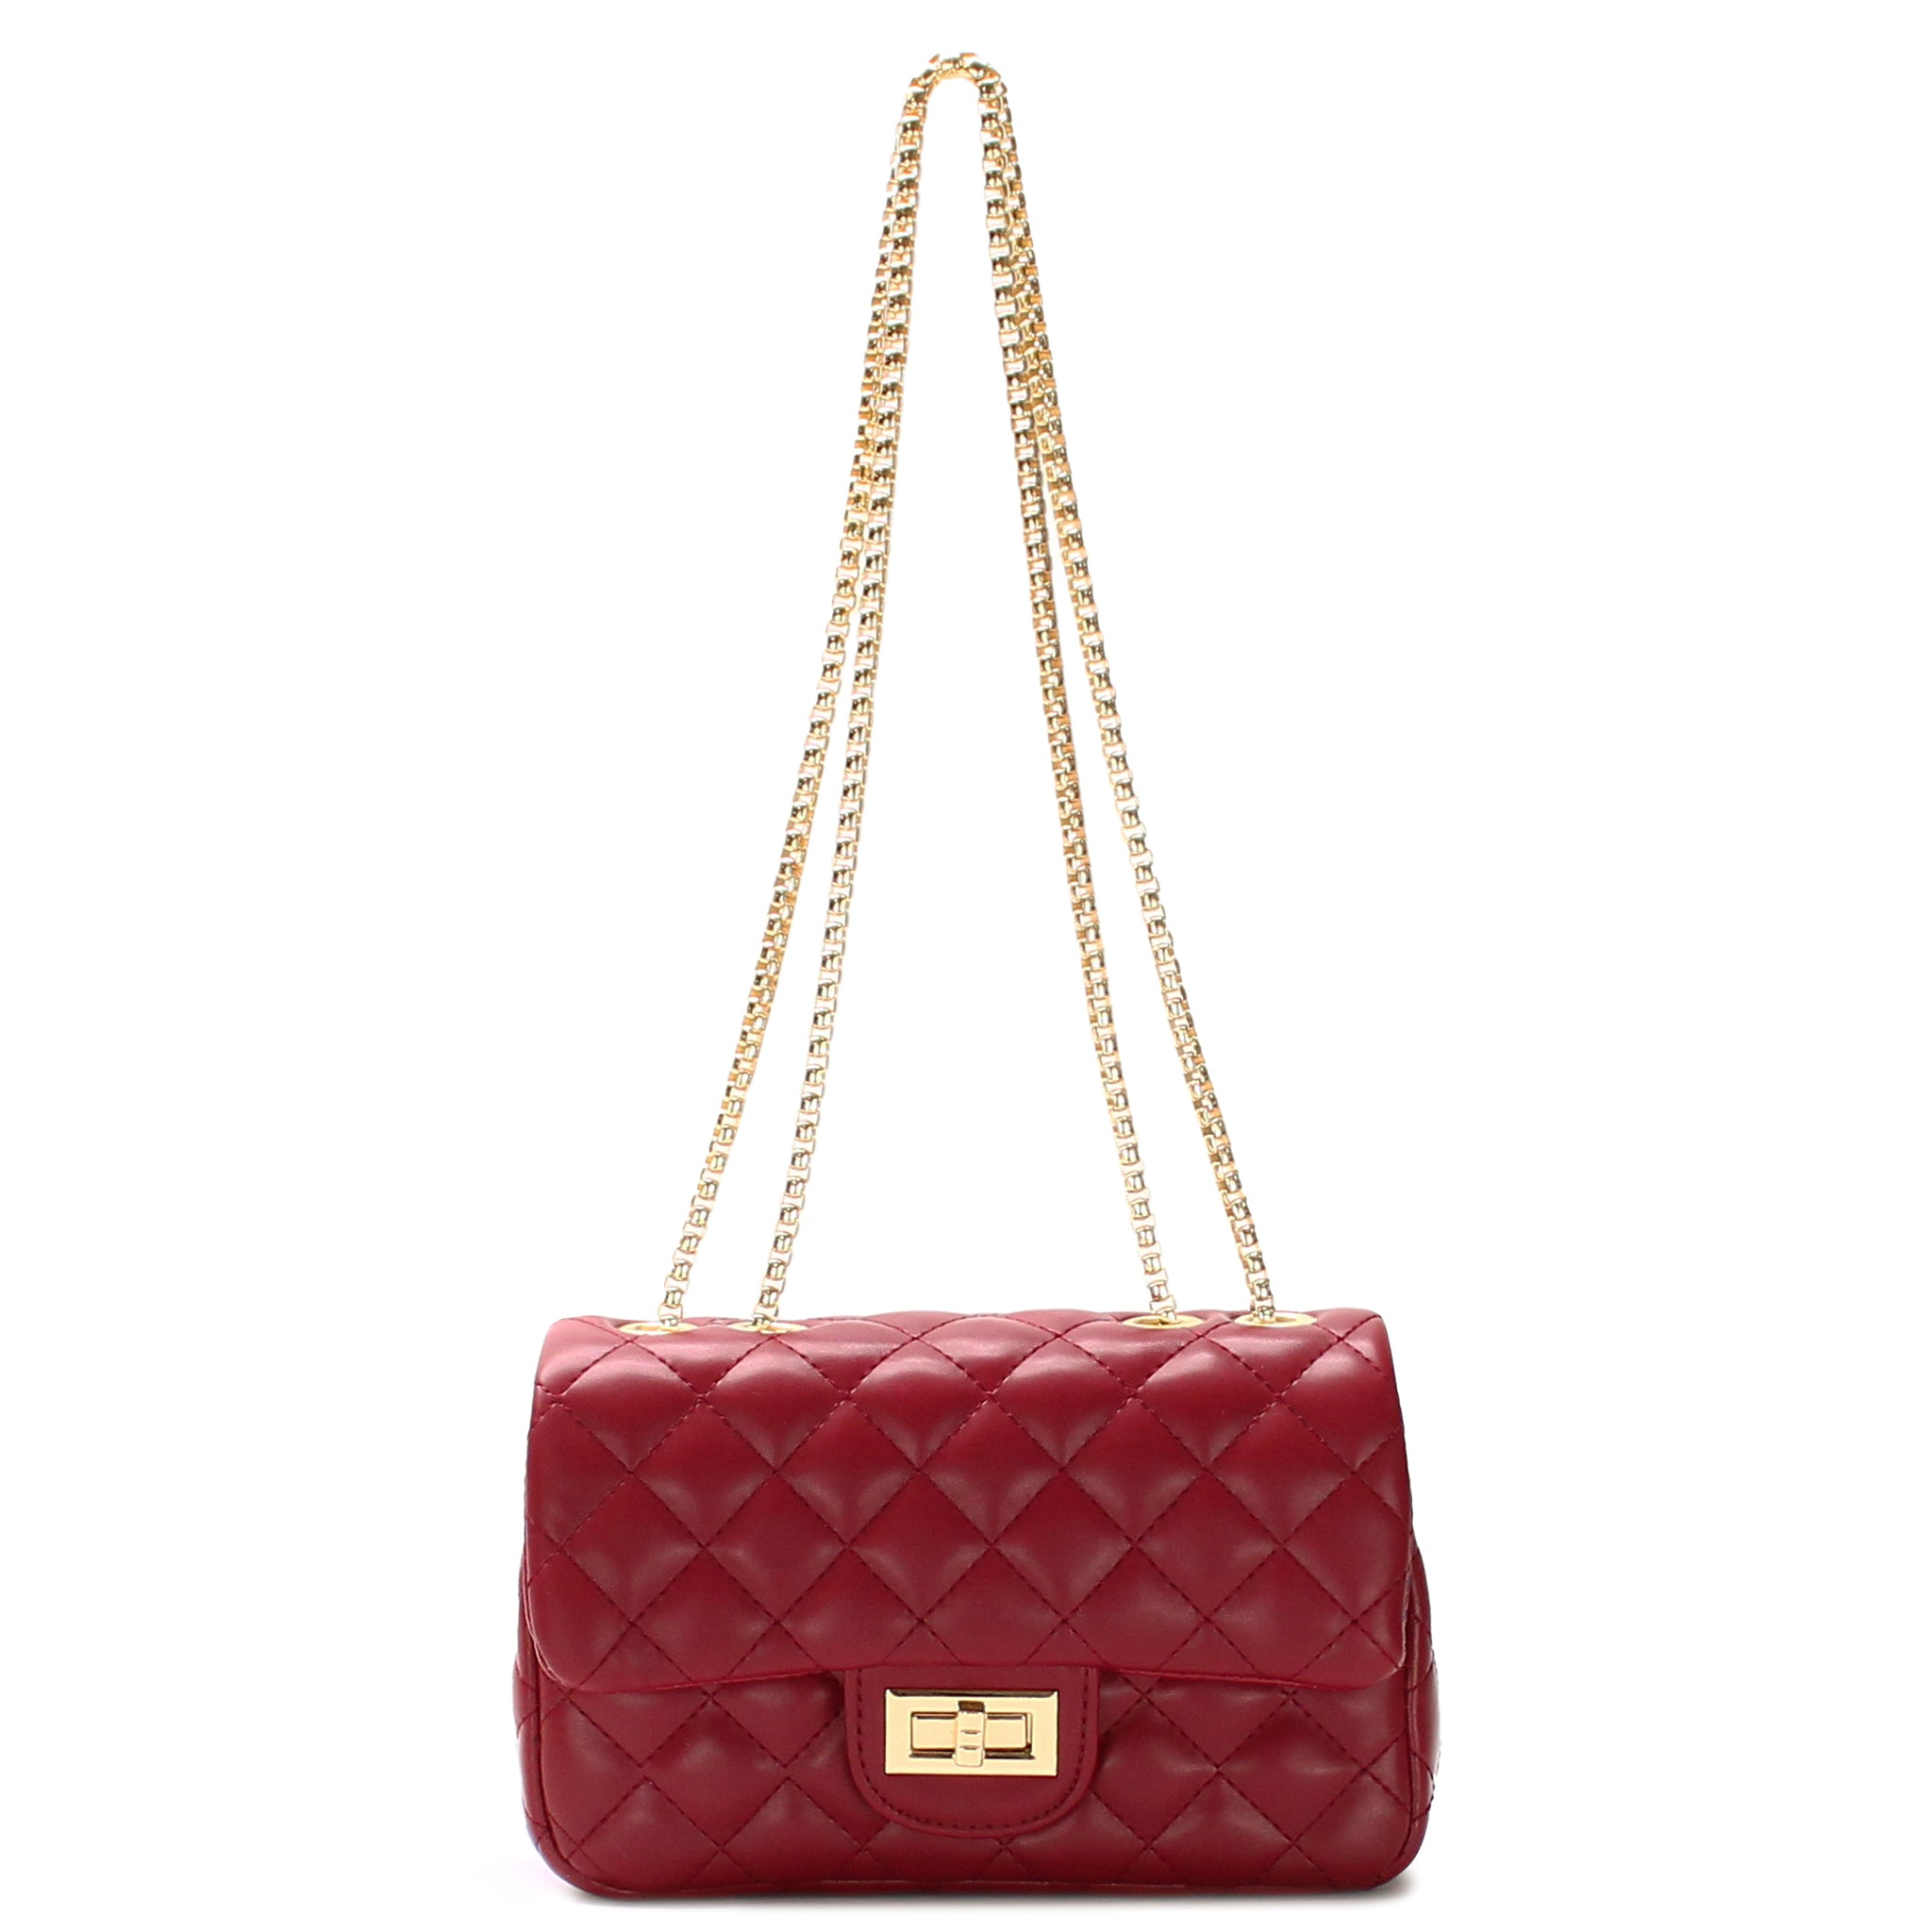 CLASSIC QUILTED SHOULDER BAG - Jenuine Handbags